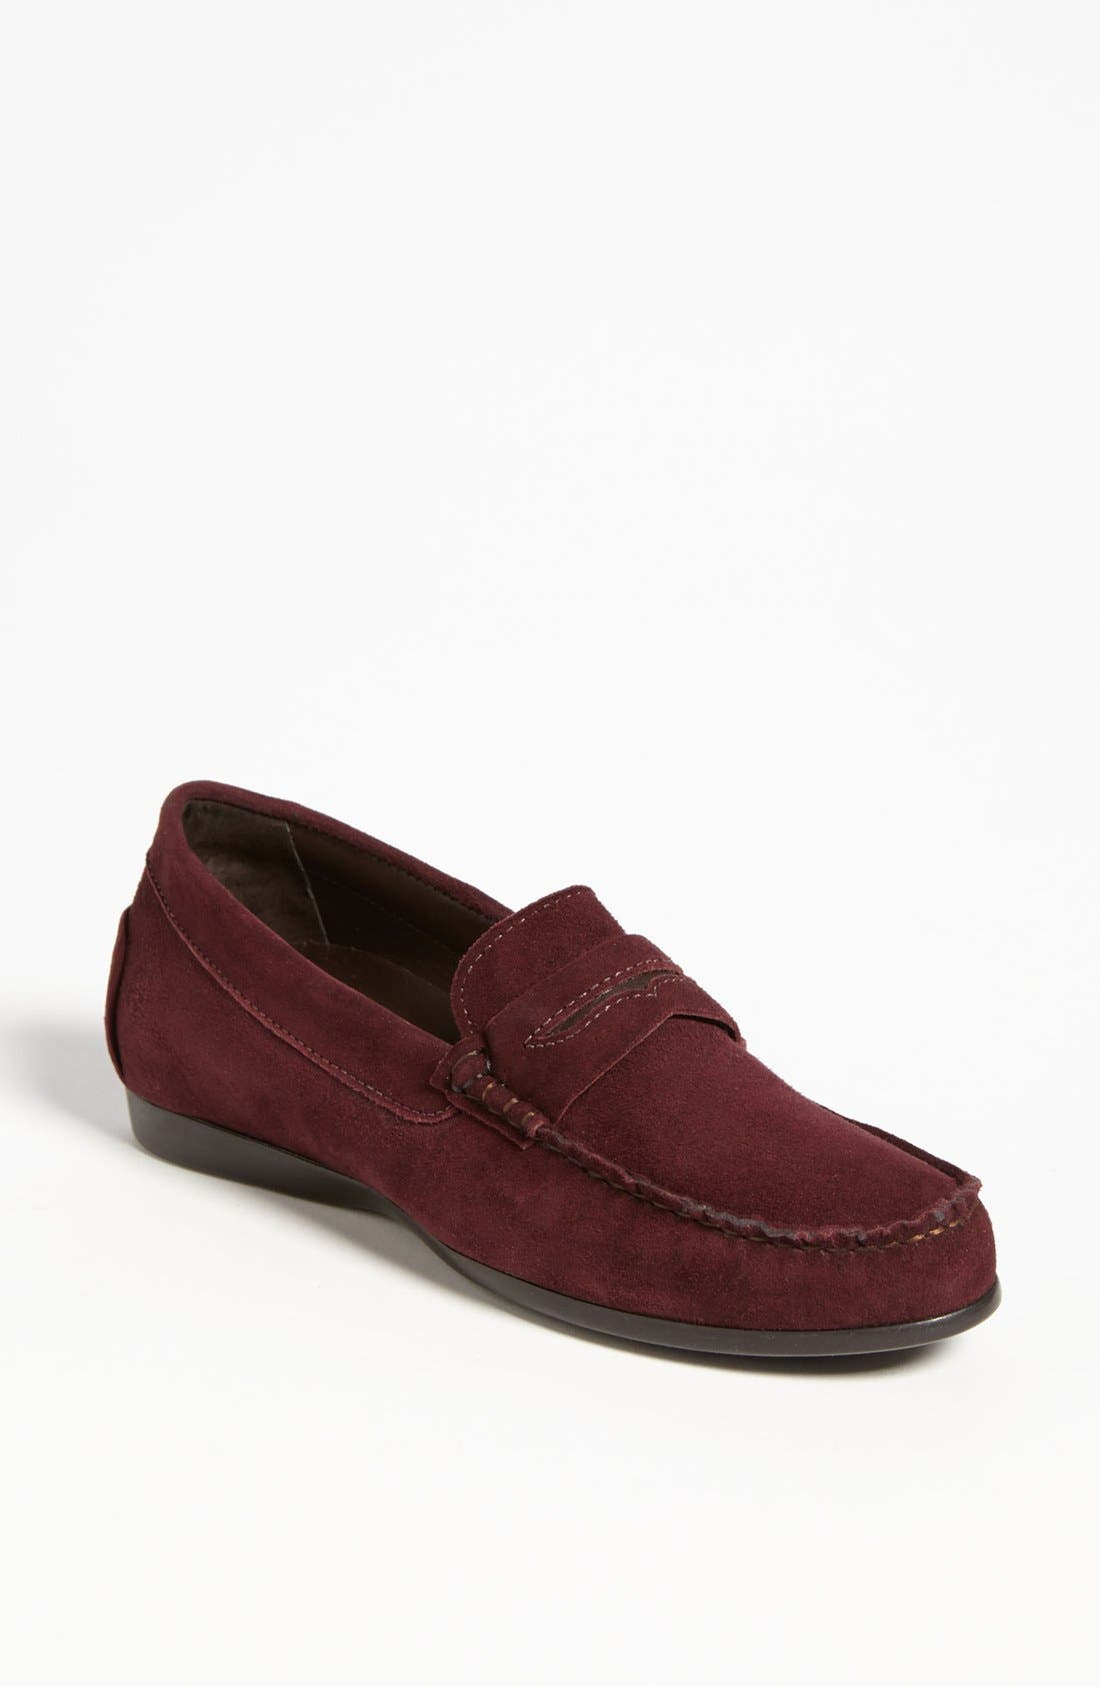 Main Image - Munro 'Ramie' Loafer